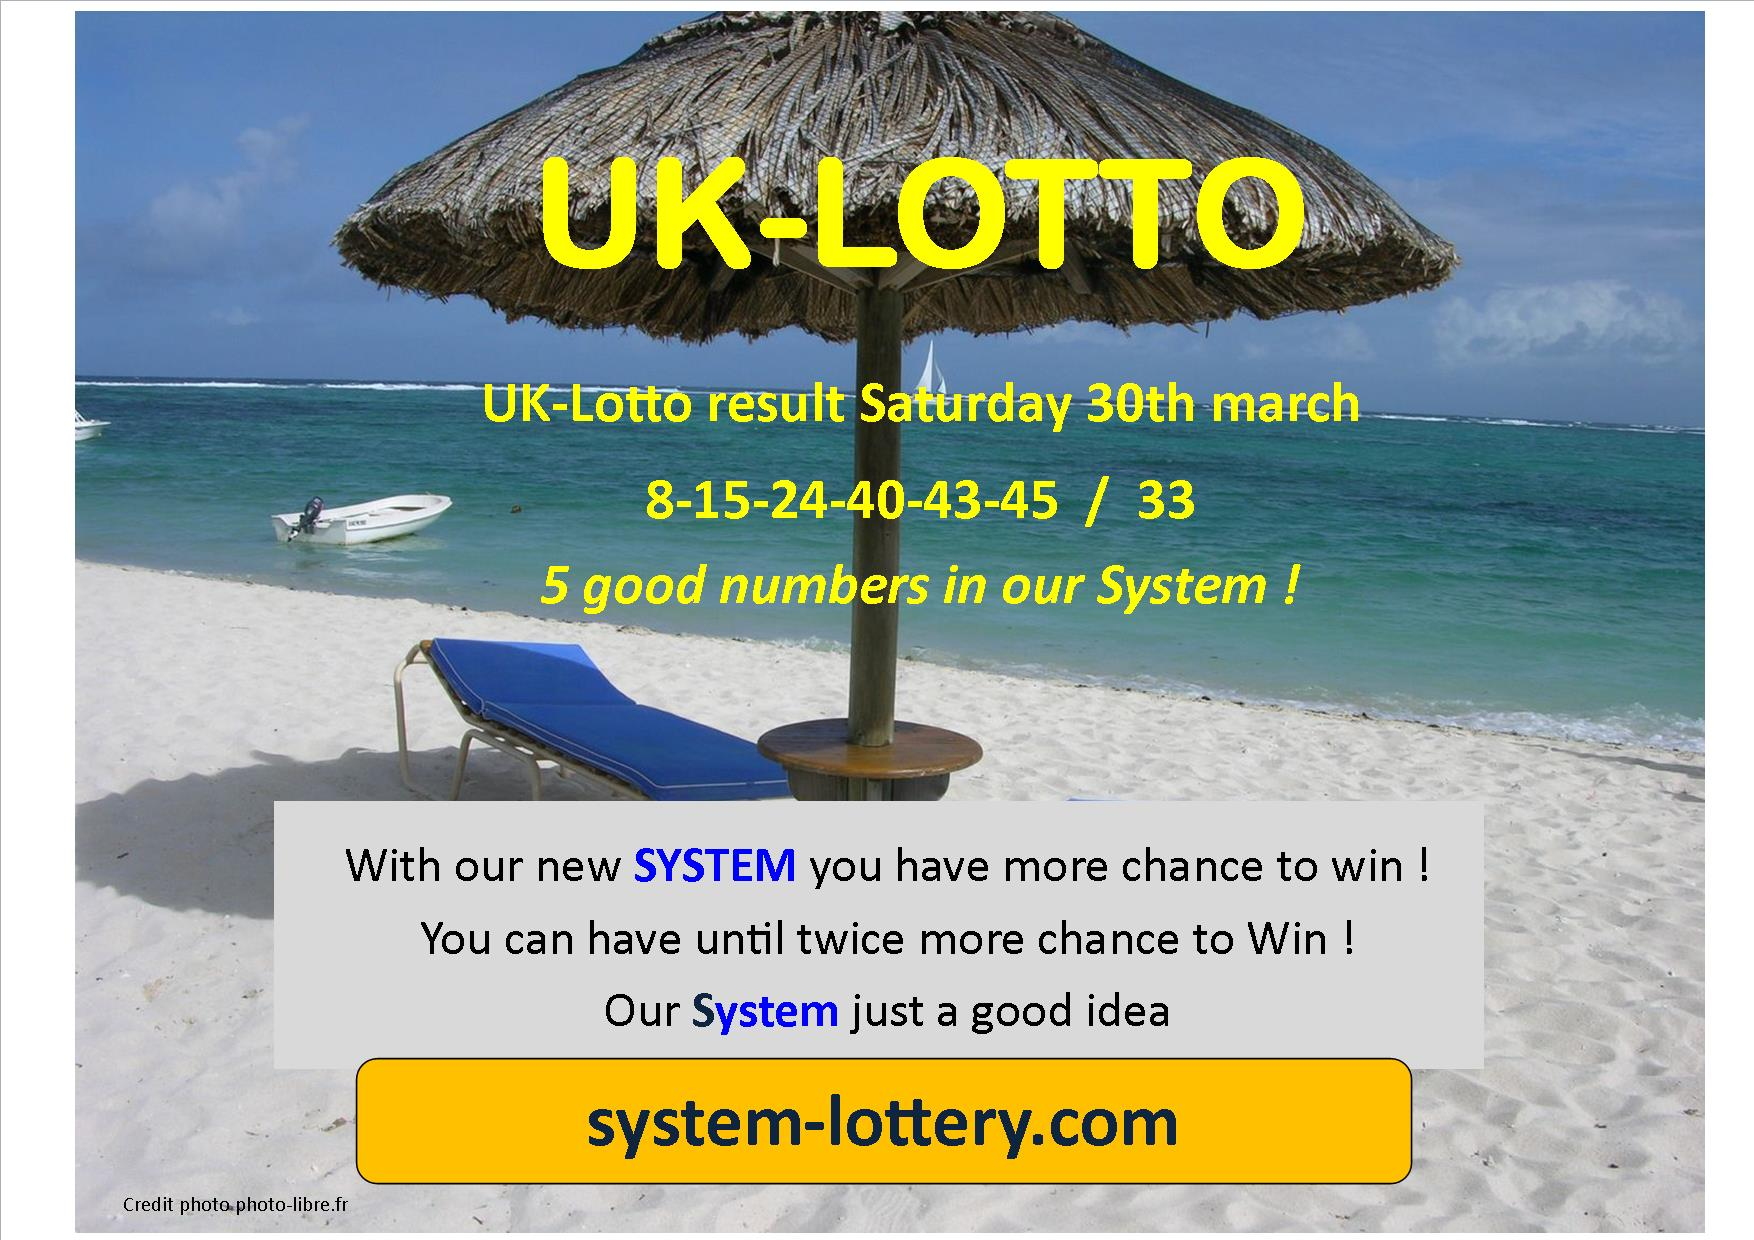 which lottery has the best chance of winning uk